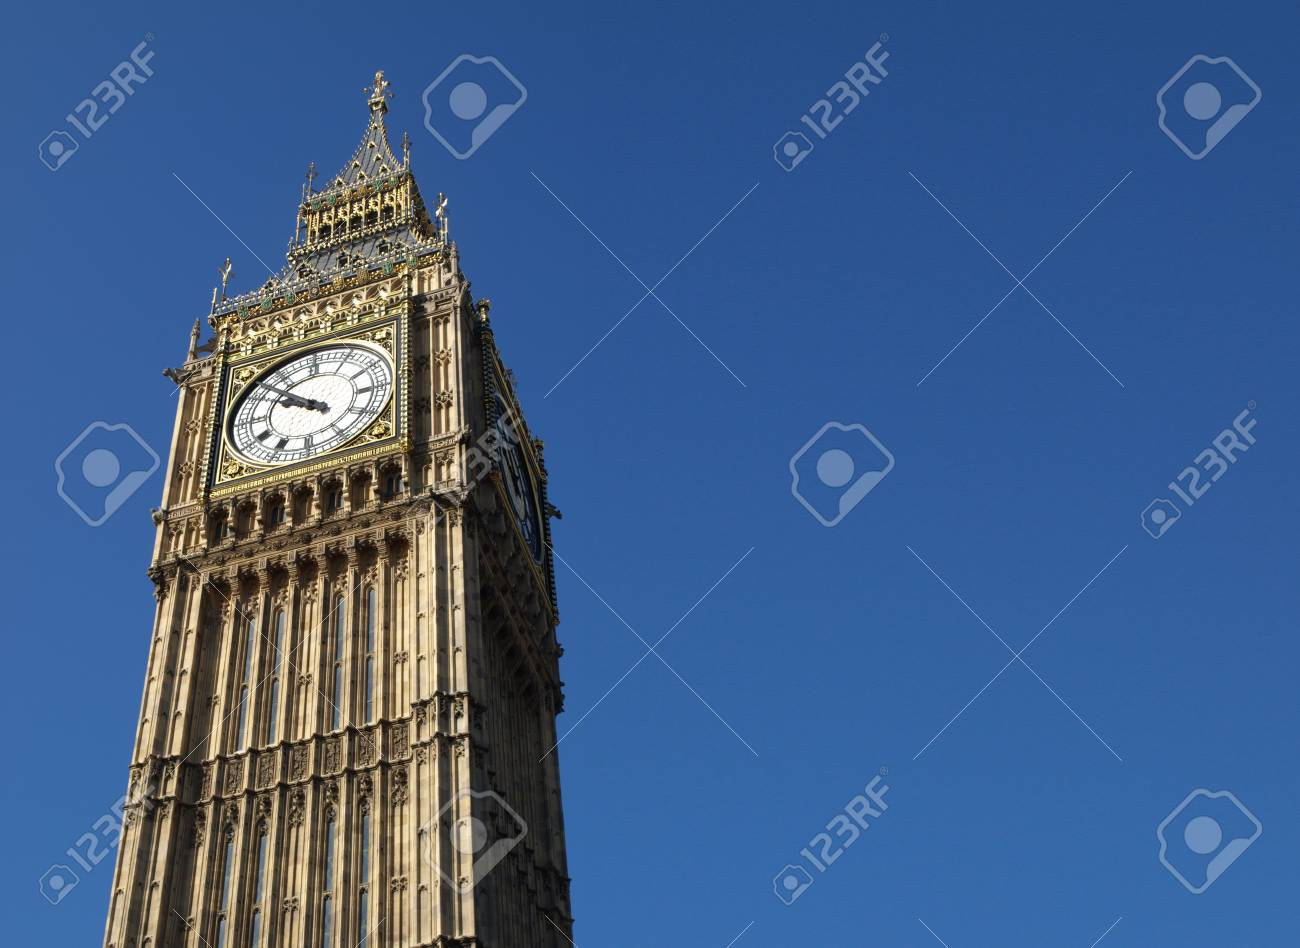 Big Ben at the Houses of Parliament, Westminster Palace, London, UK - with copyspace Stock Photo - 4935711